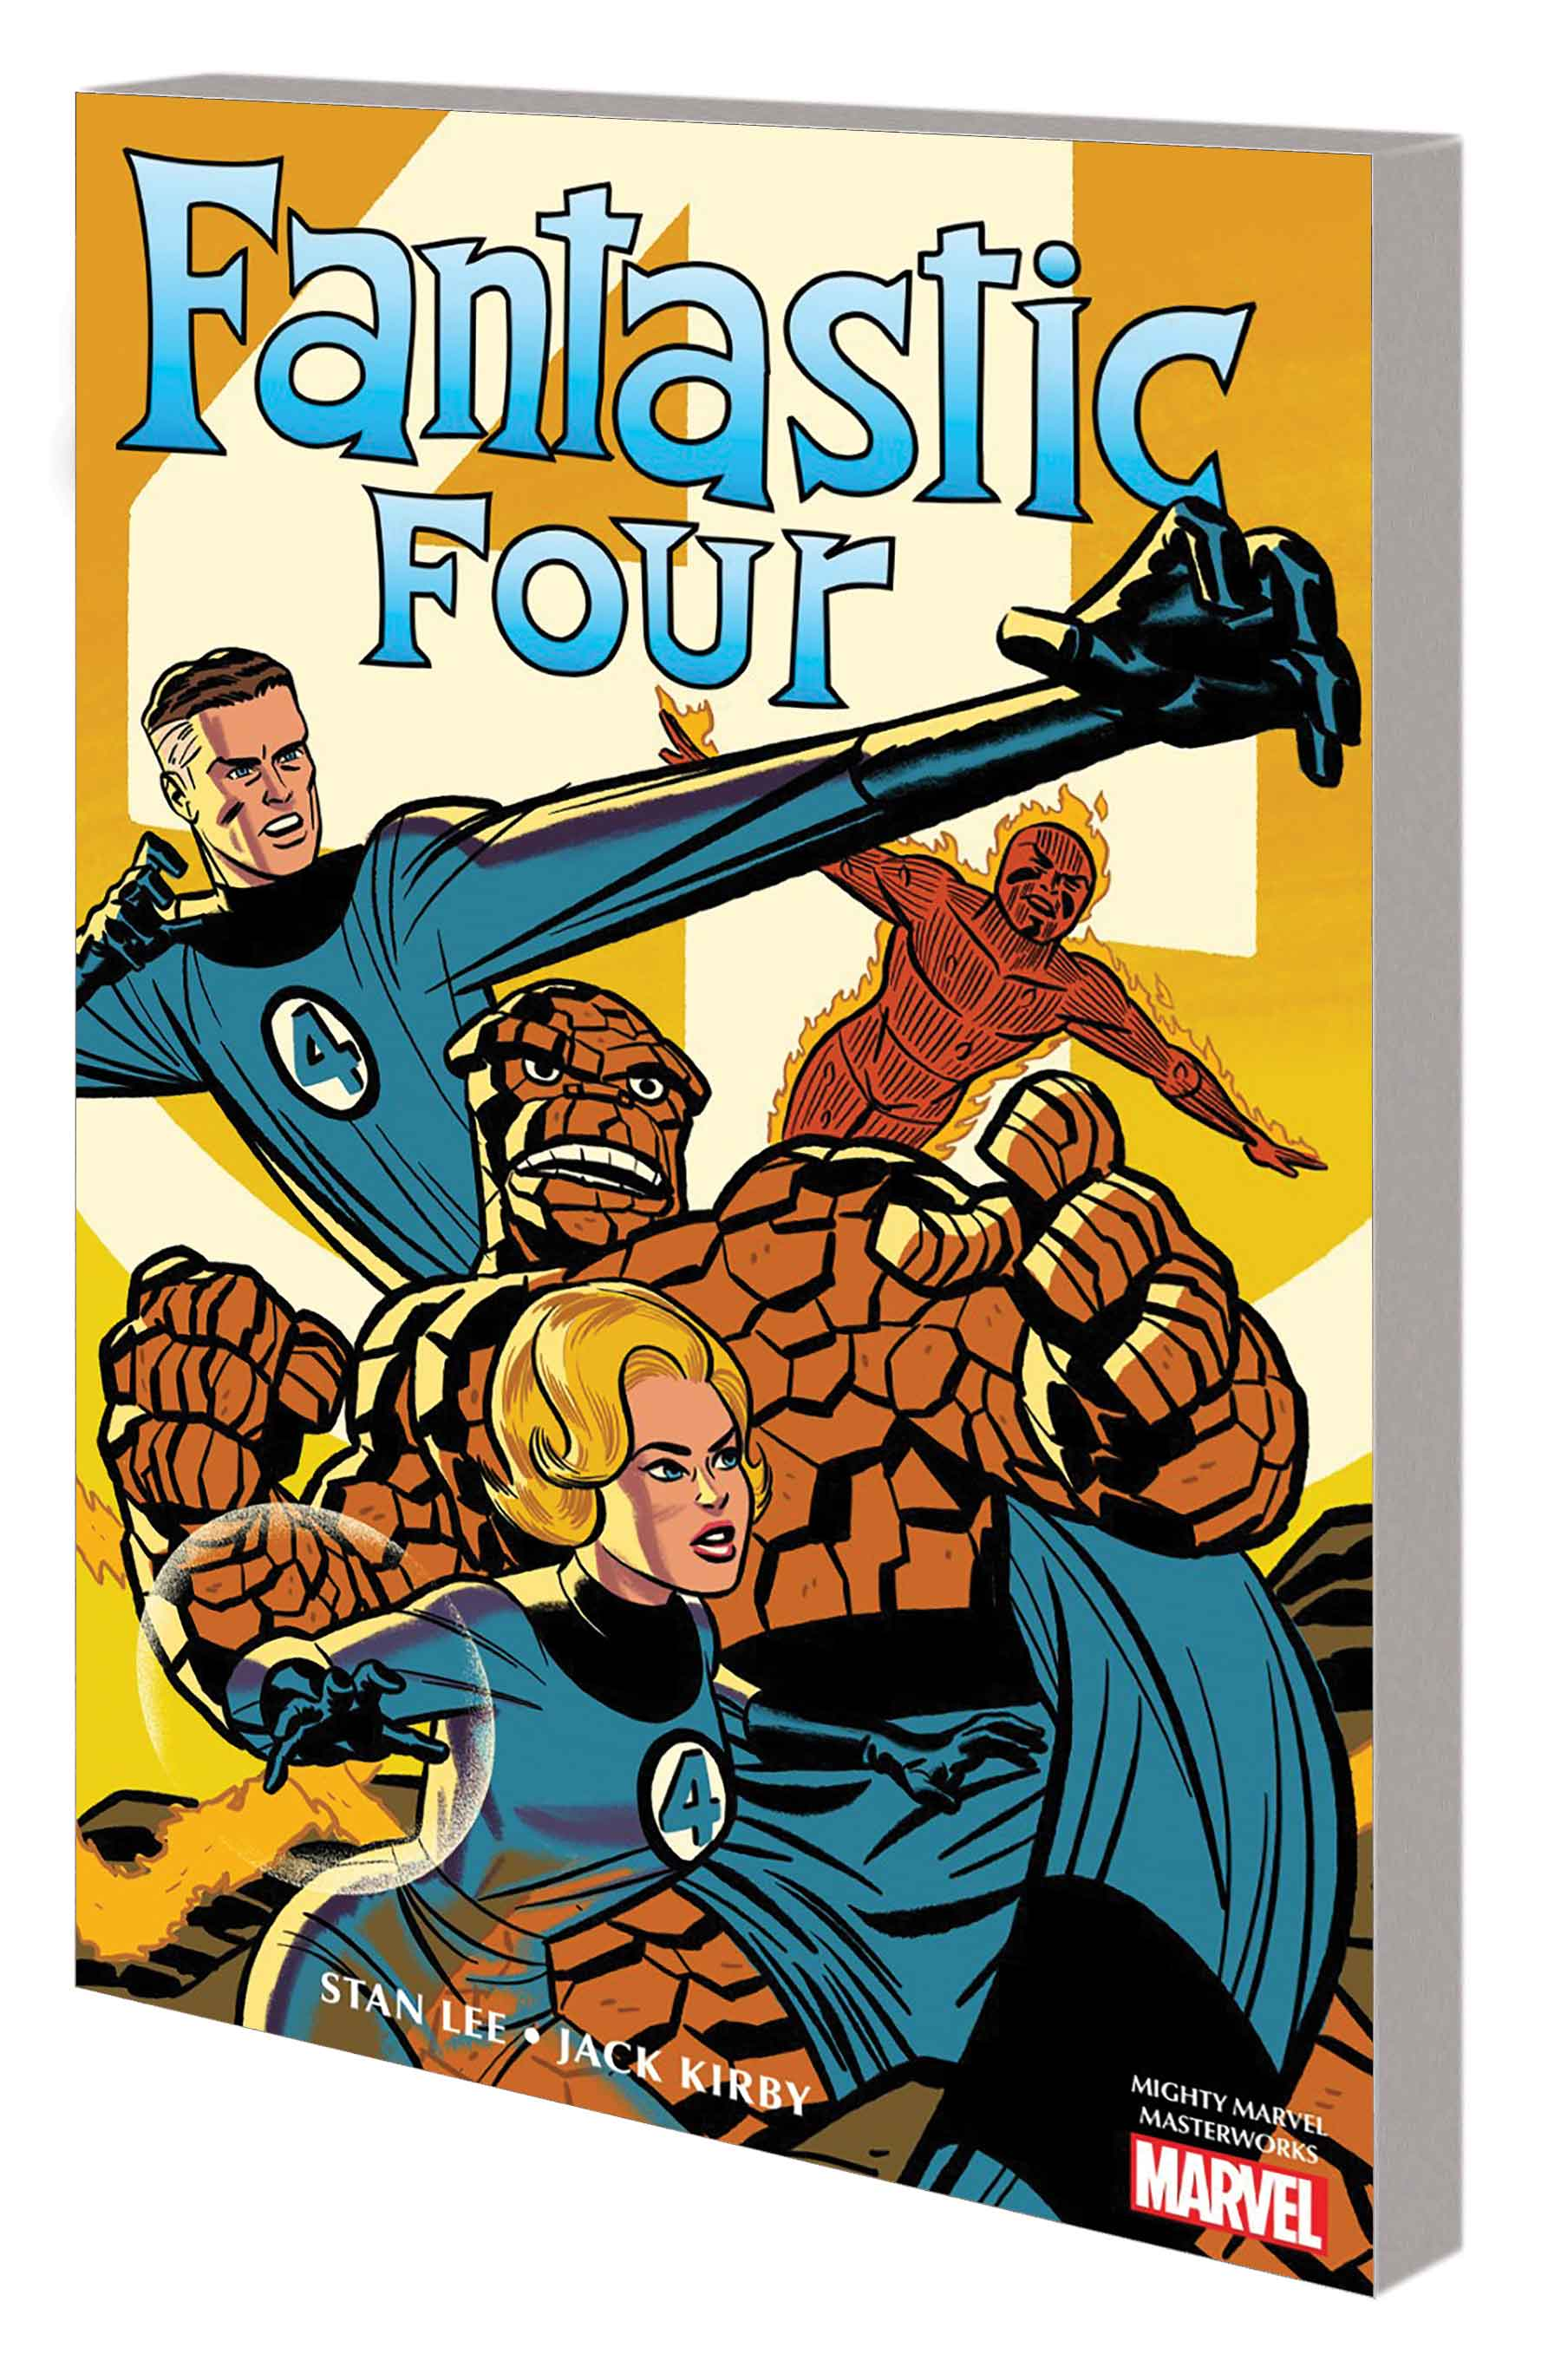 MIGHTY MARVEL MASTERWORKS: THE FANTASTIC FOUR VOL. 1 - THE WORLD'S GREATEST HEROES GN-TPB MICHAEL CHO COVER (Trade Paperback)